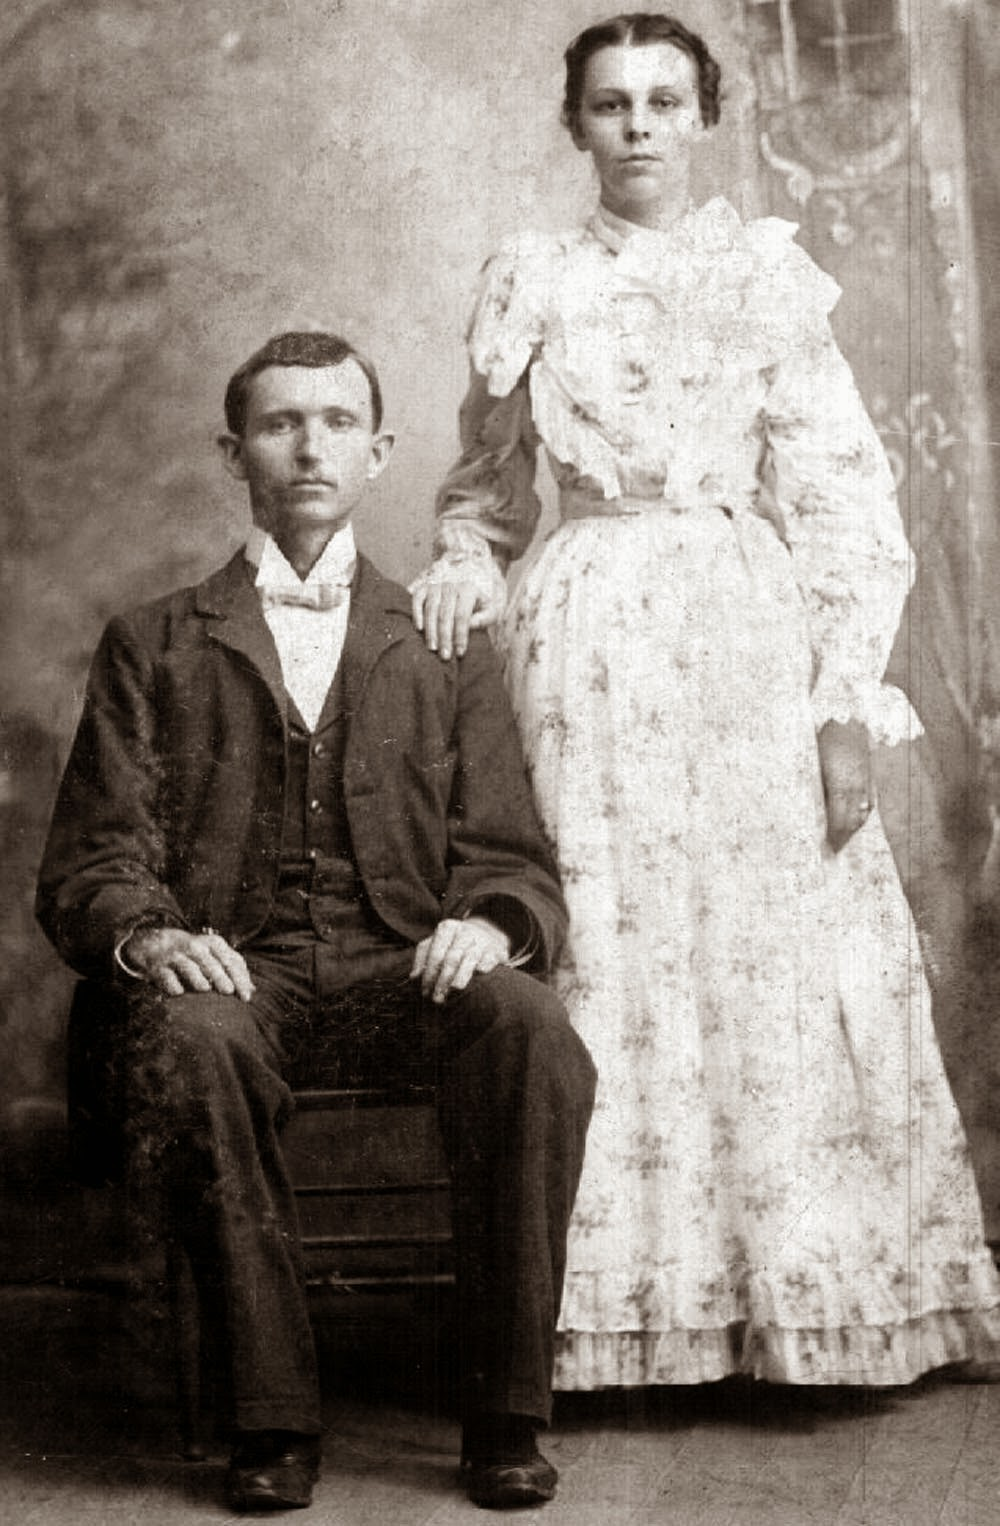 1897-Thomas B. Gray and Lelia Edenbeck